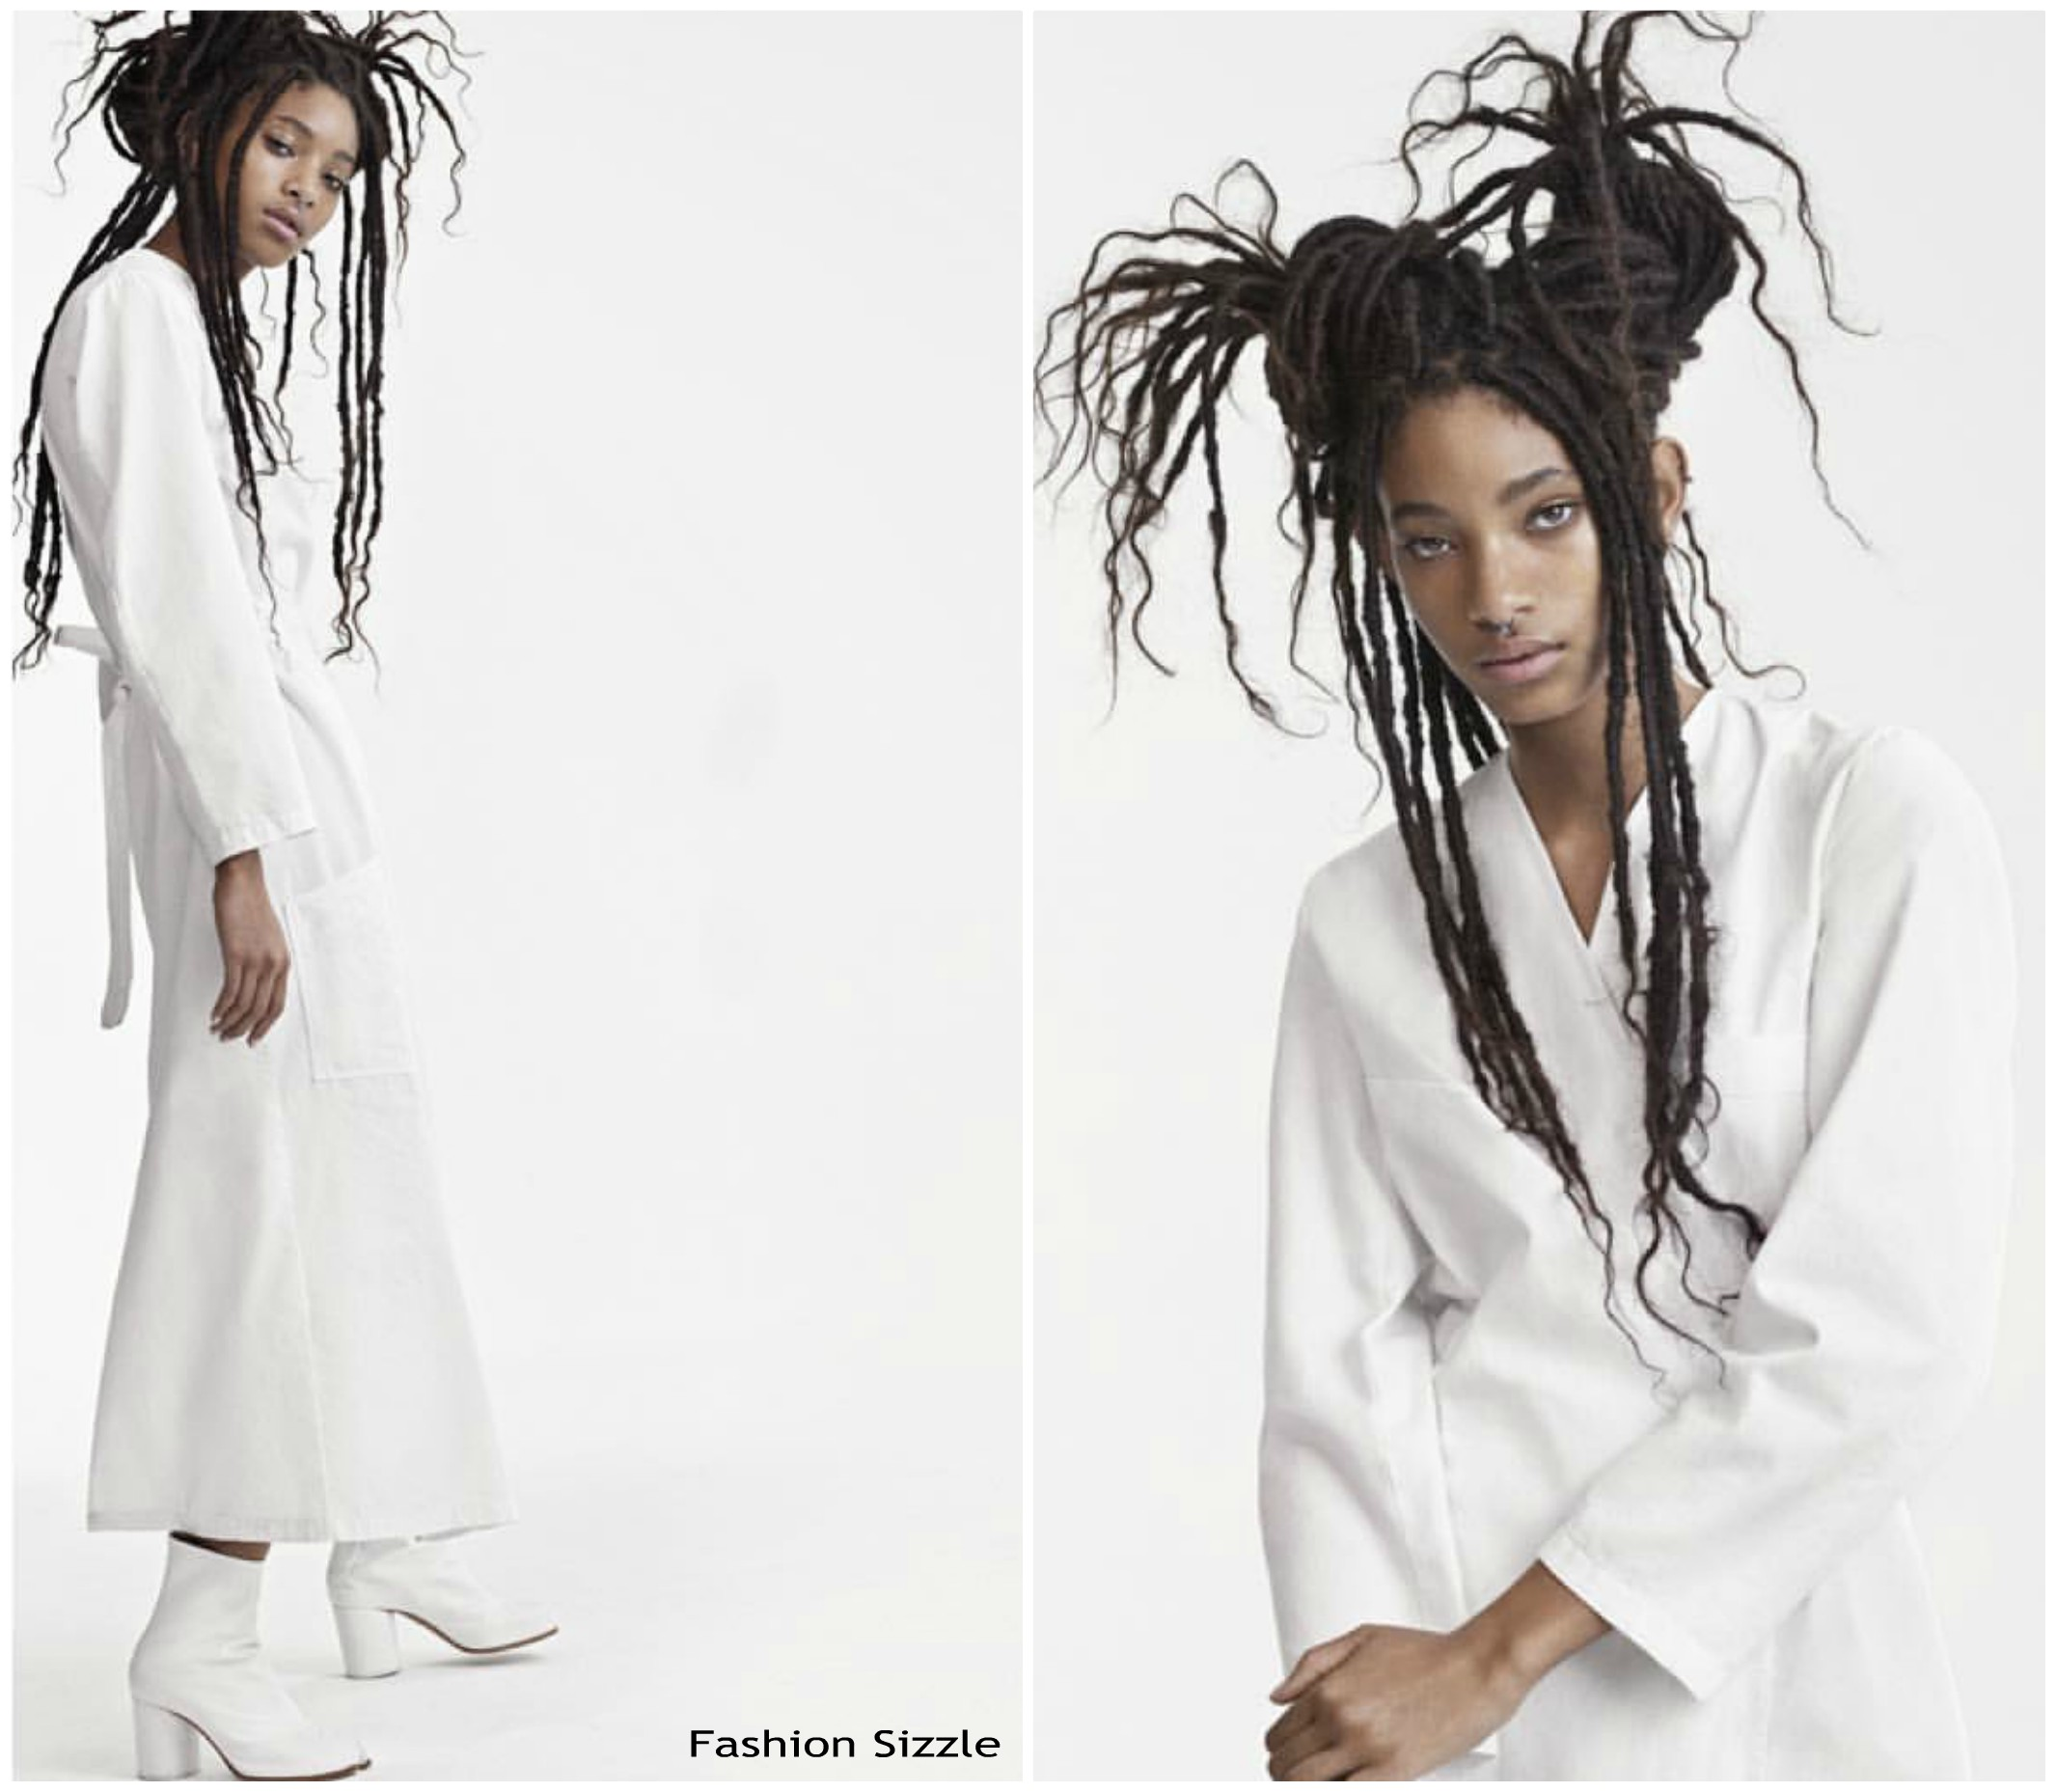 willow-smith-for-maison-margiela